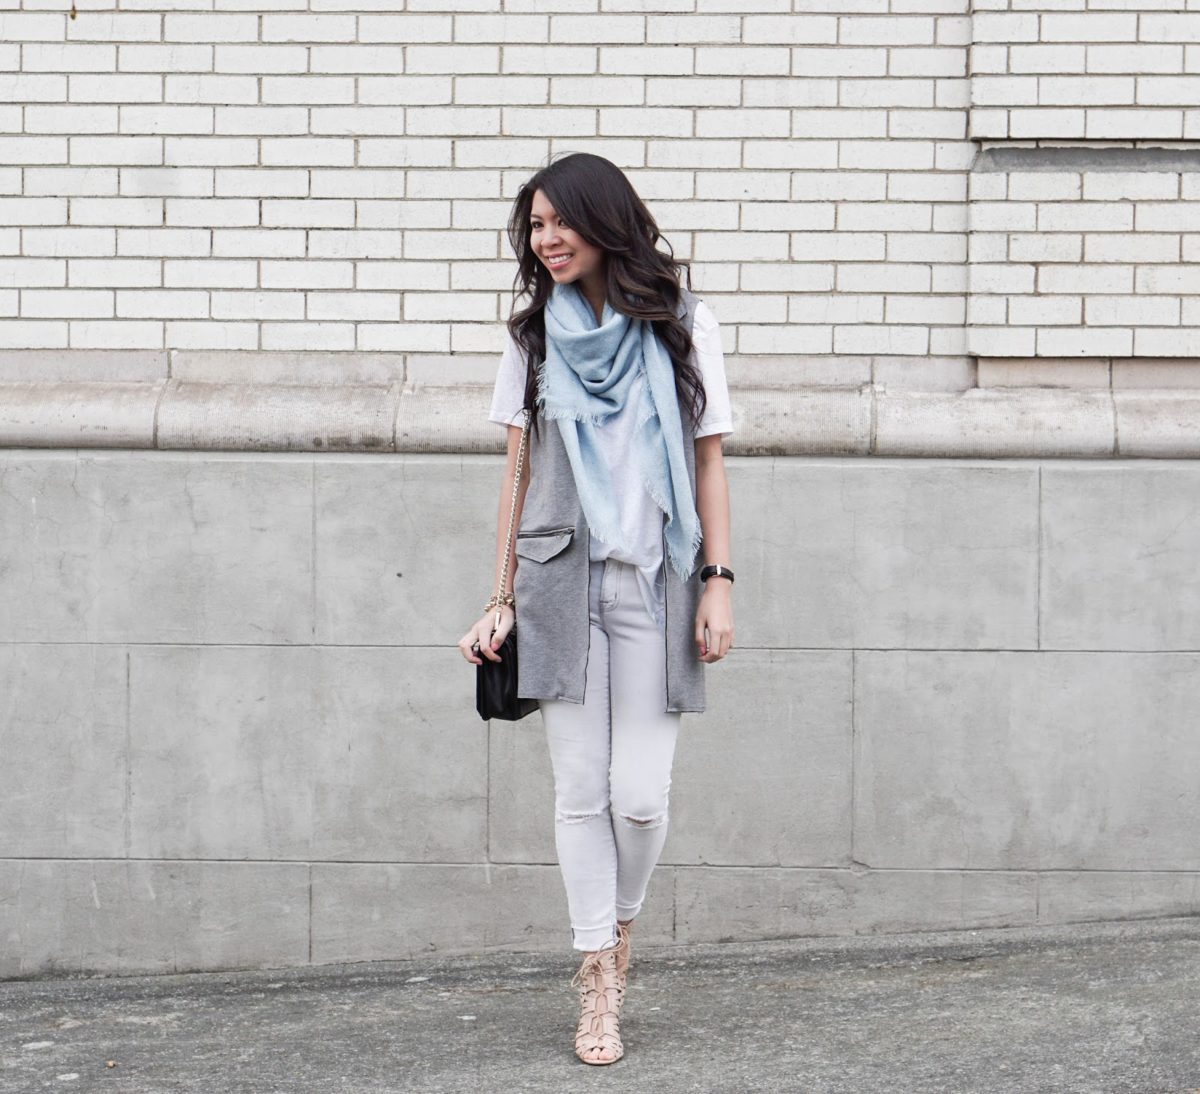 ab54a774b2e Neutral Palette  Topshop Vest w  White Jeans and Tee